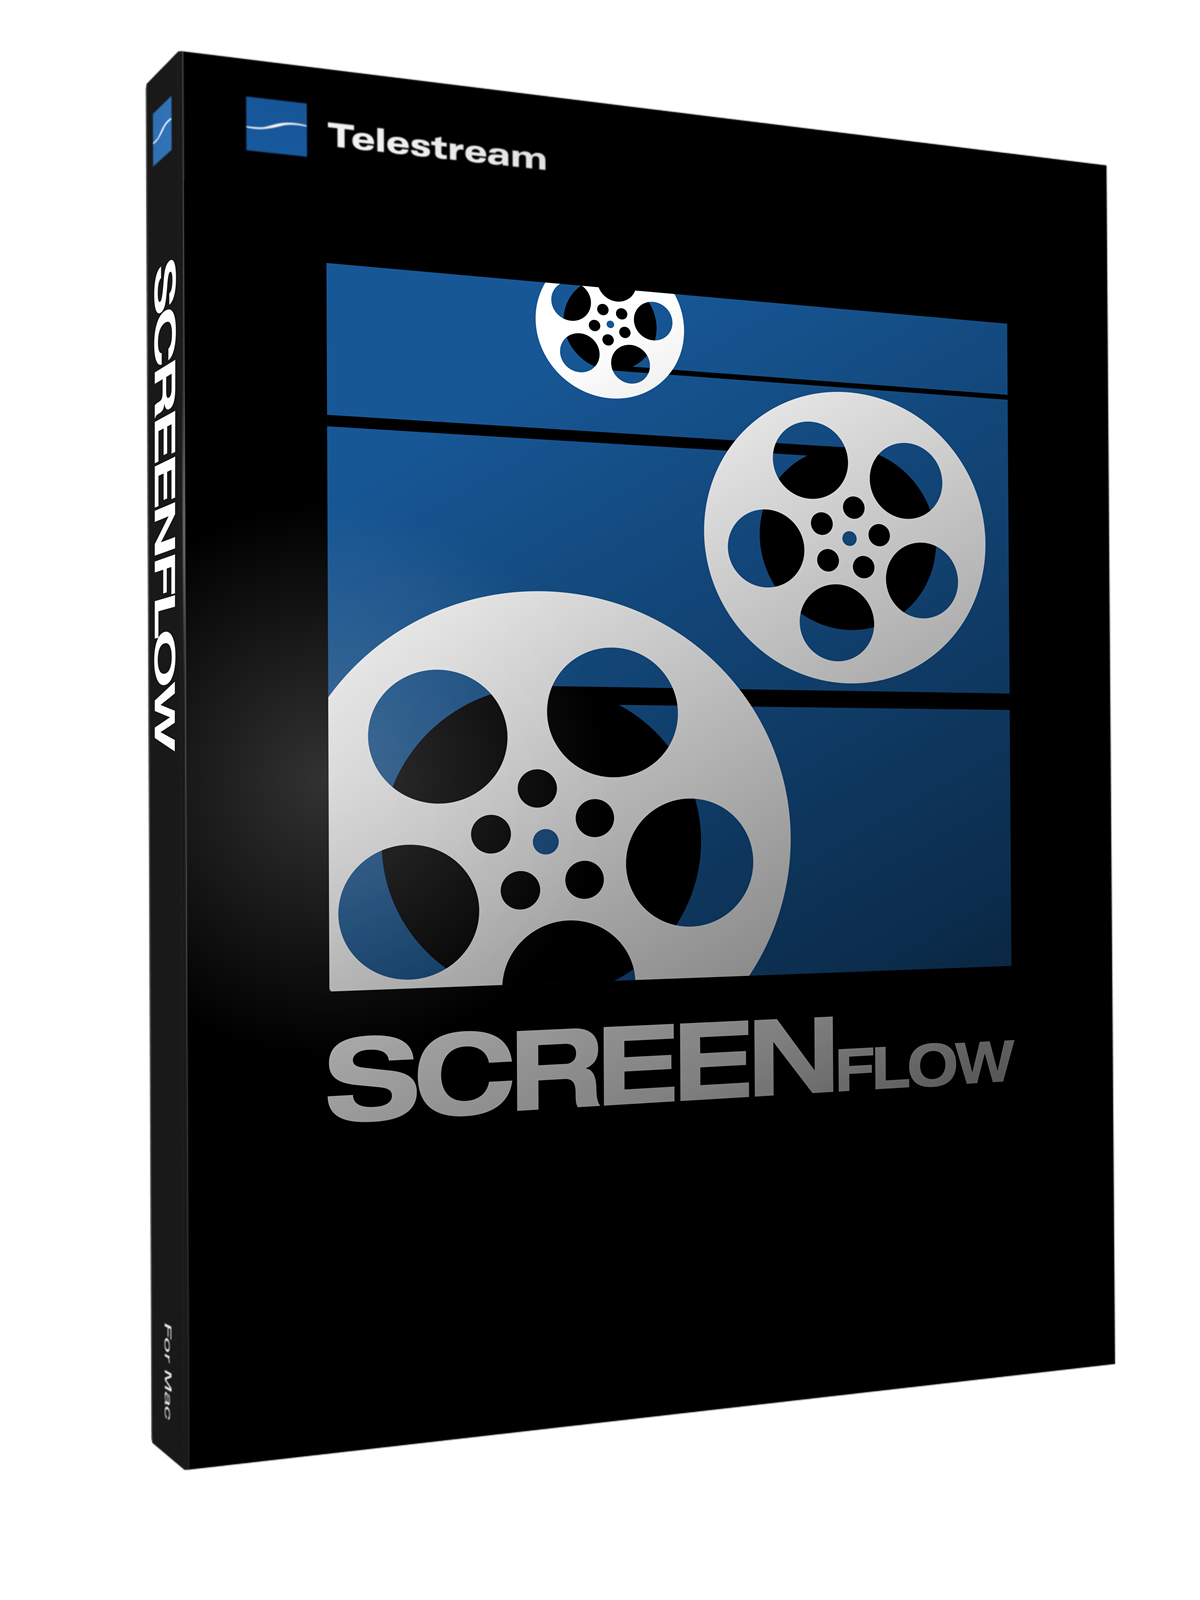 Screenflow 3 announcement includes quote from Digital Dazzle